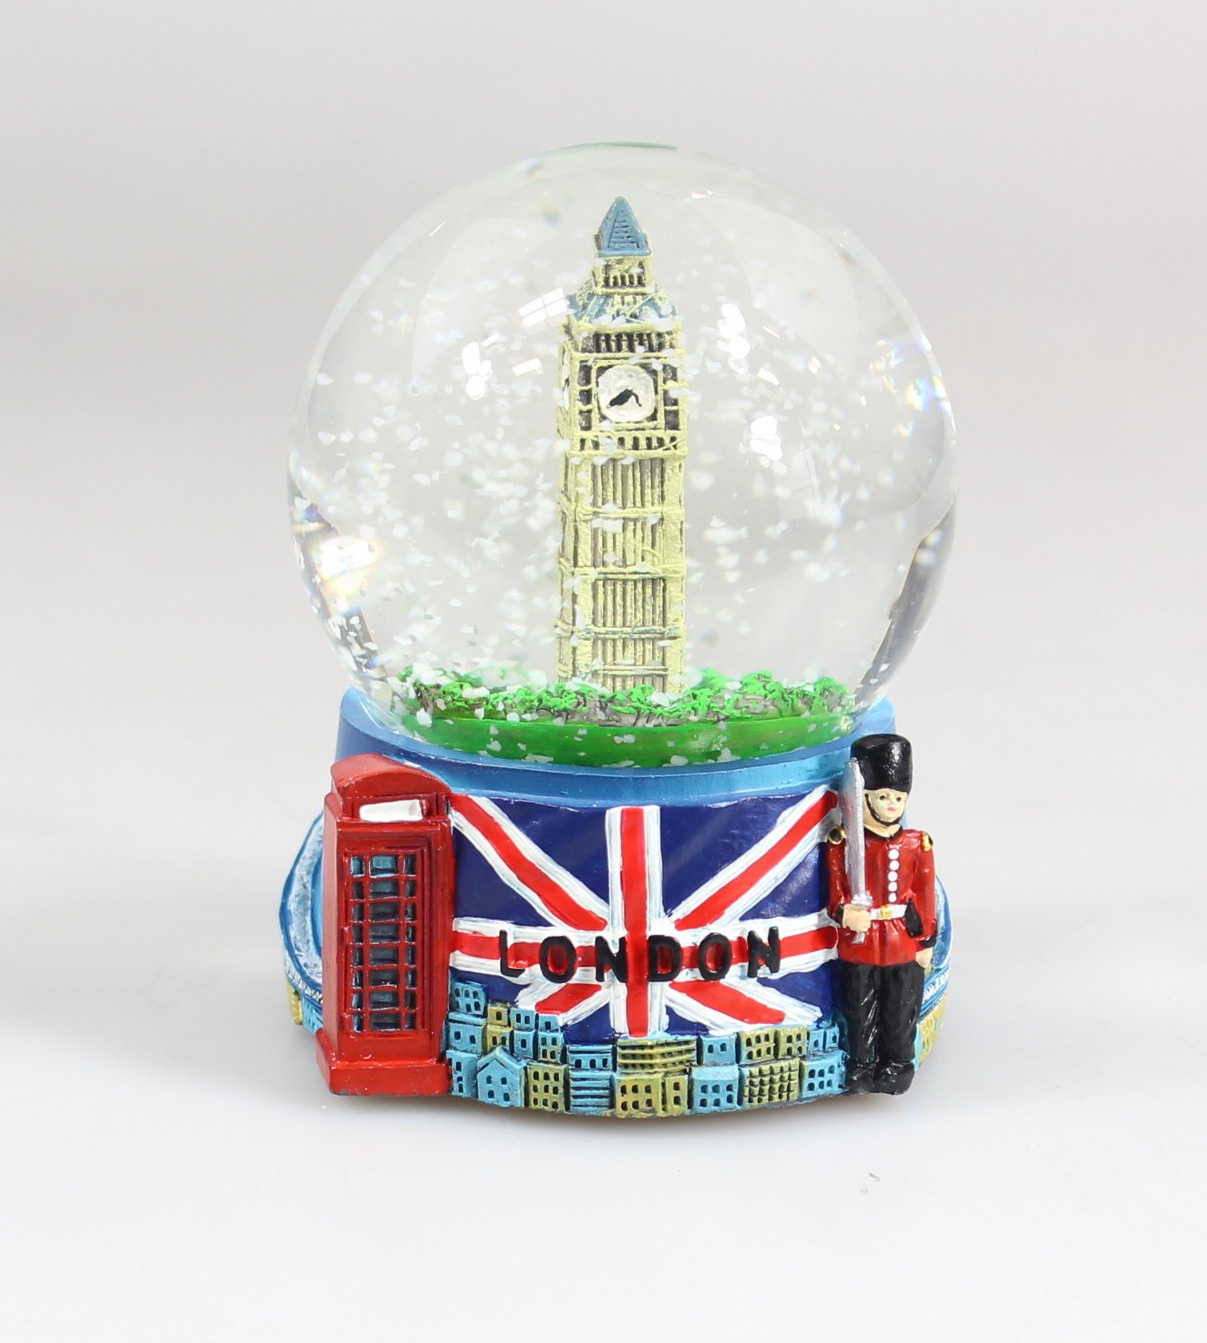 London Snow Globe Silver London Snow Globe with Big Ben and Union Jack Flag, 3.5 Inches Tall